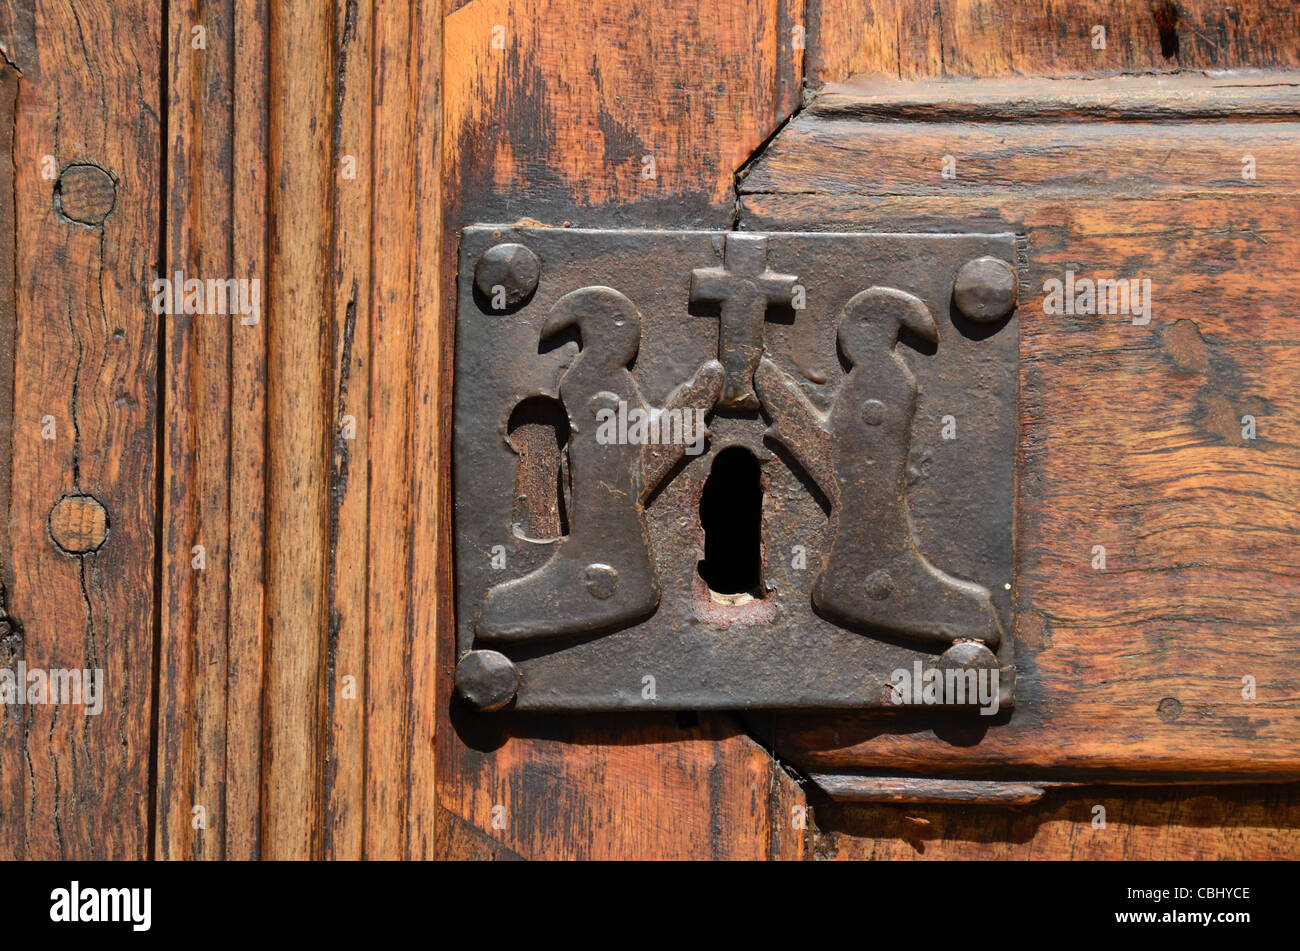 Old Lock with Christian Penitents, Door of Chapel of the White Penitents (1492) La Tour or La Tour-sur-Tinée, - Stock Image